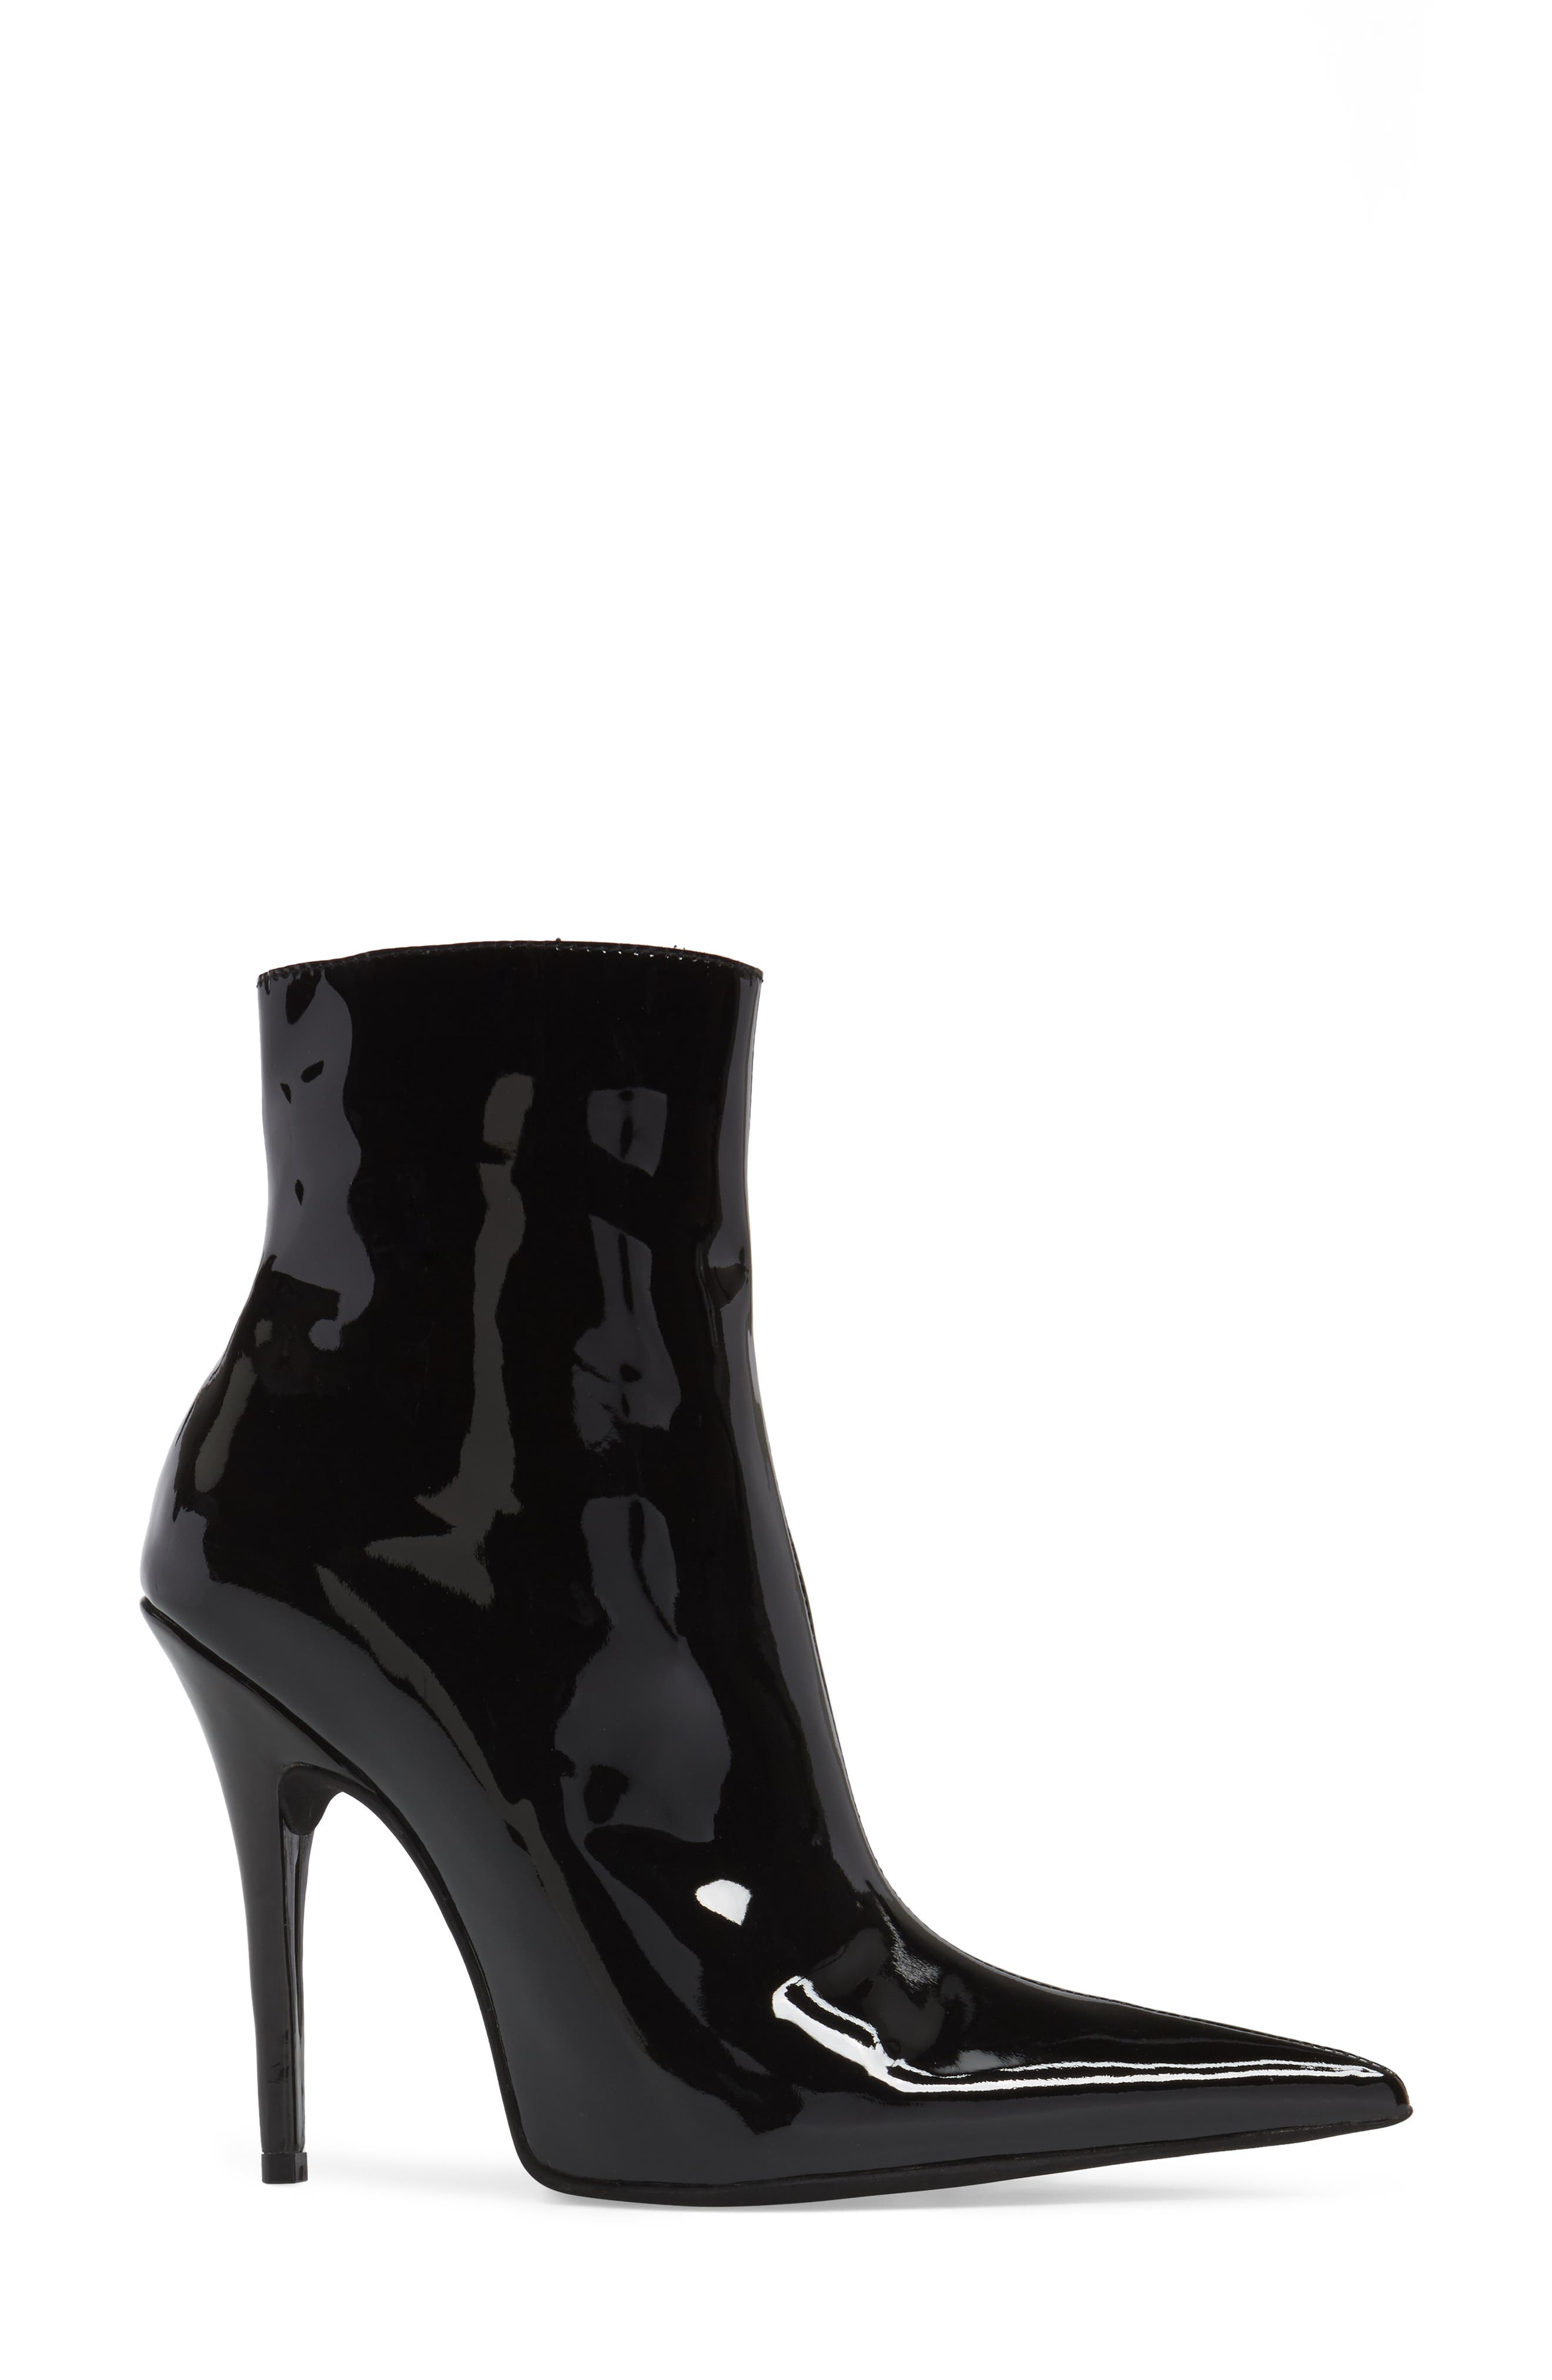 Vedette Pointy Toe Booties,                             Alternate thumbnail 3, color,                             001